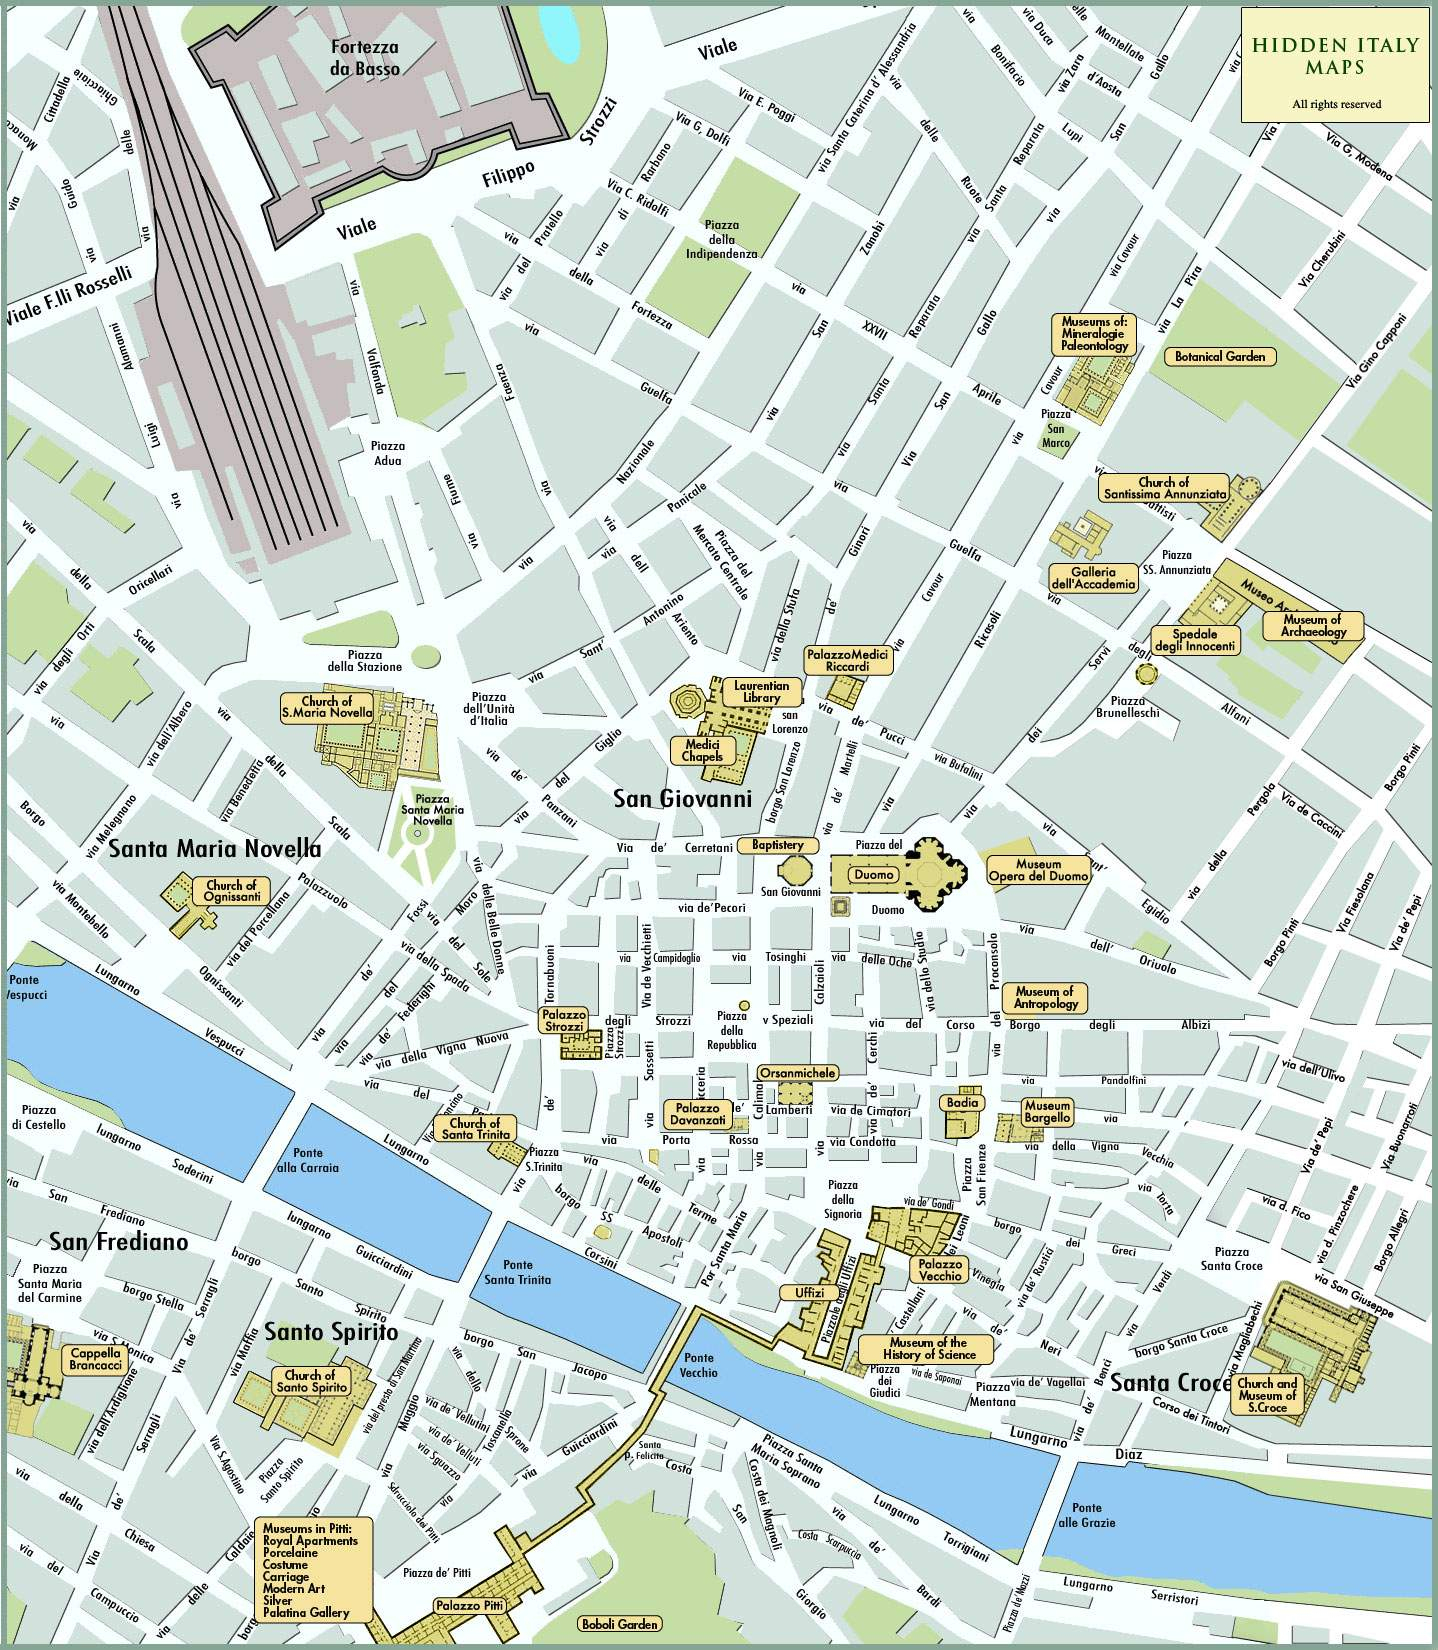 Large Florence Maps For Free Download And Print | High-Resolution - Printable Map Of Florence